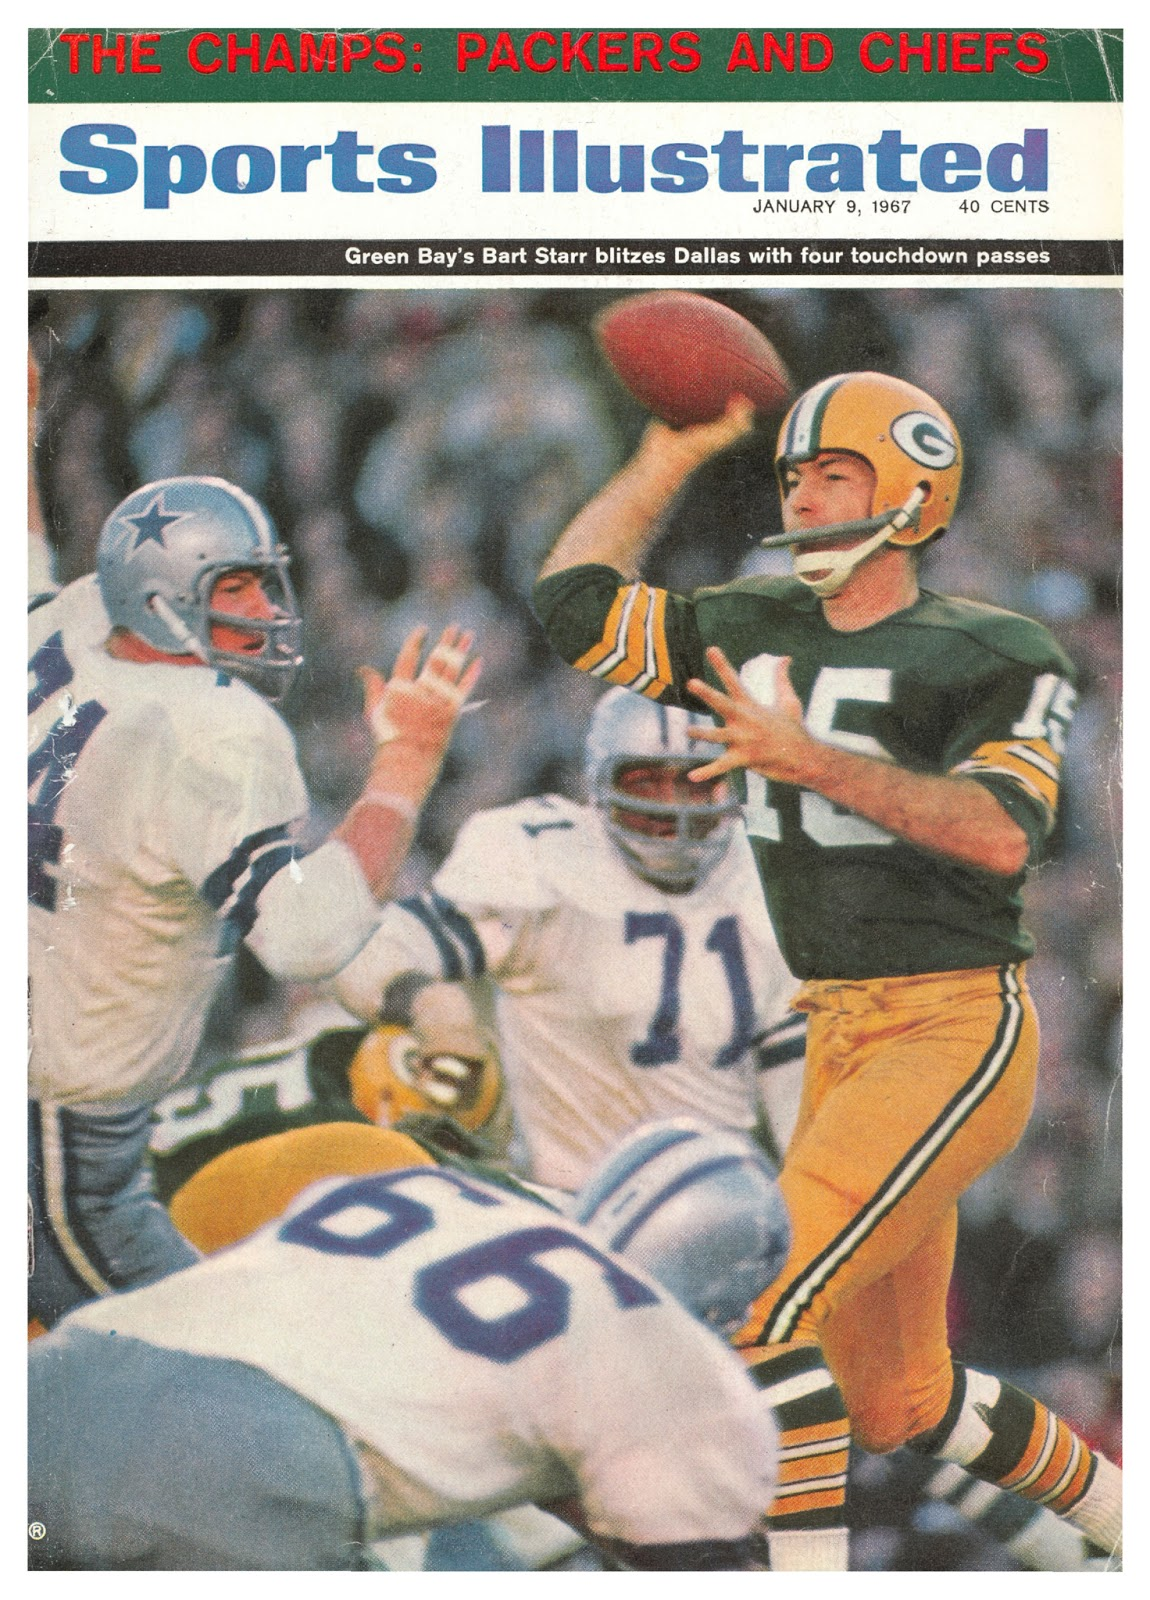 It shows quarterback Bart Starr bringing his arm forward to pass ad0c70d78